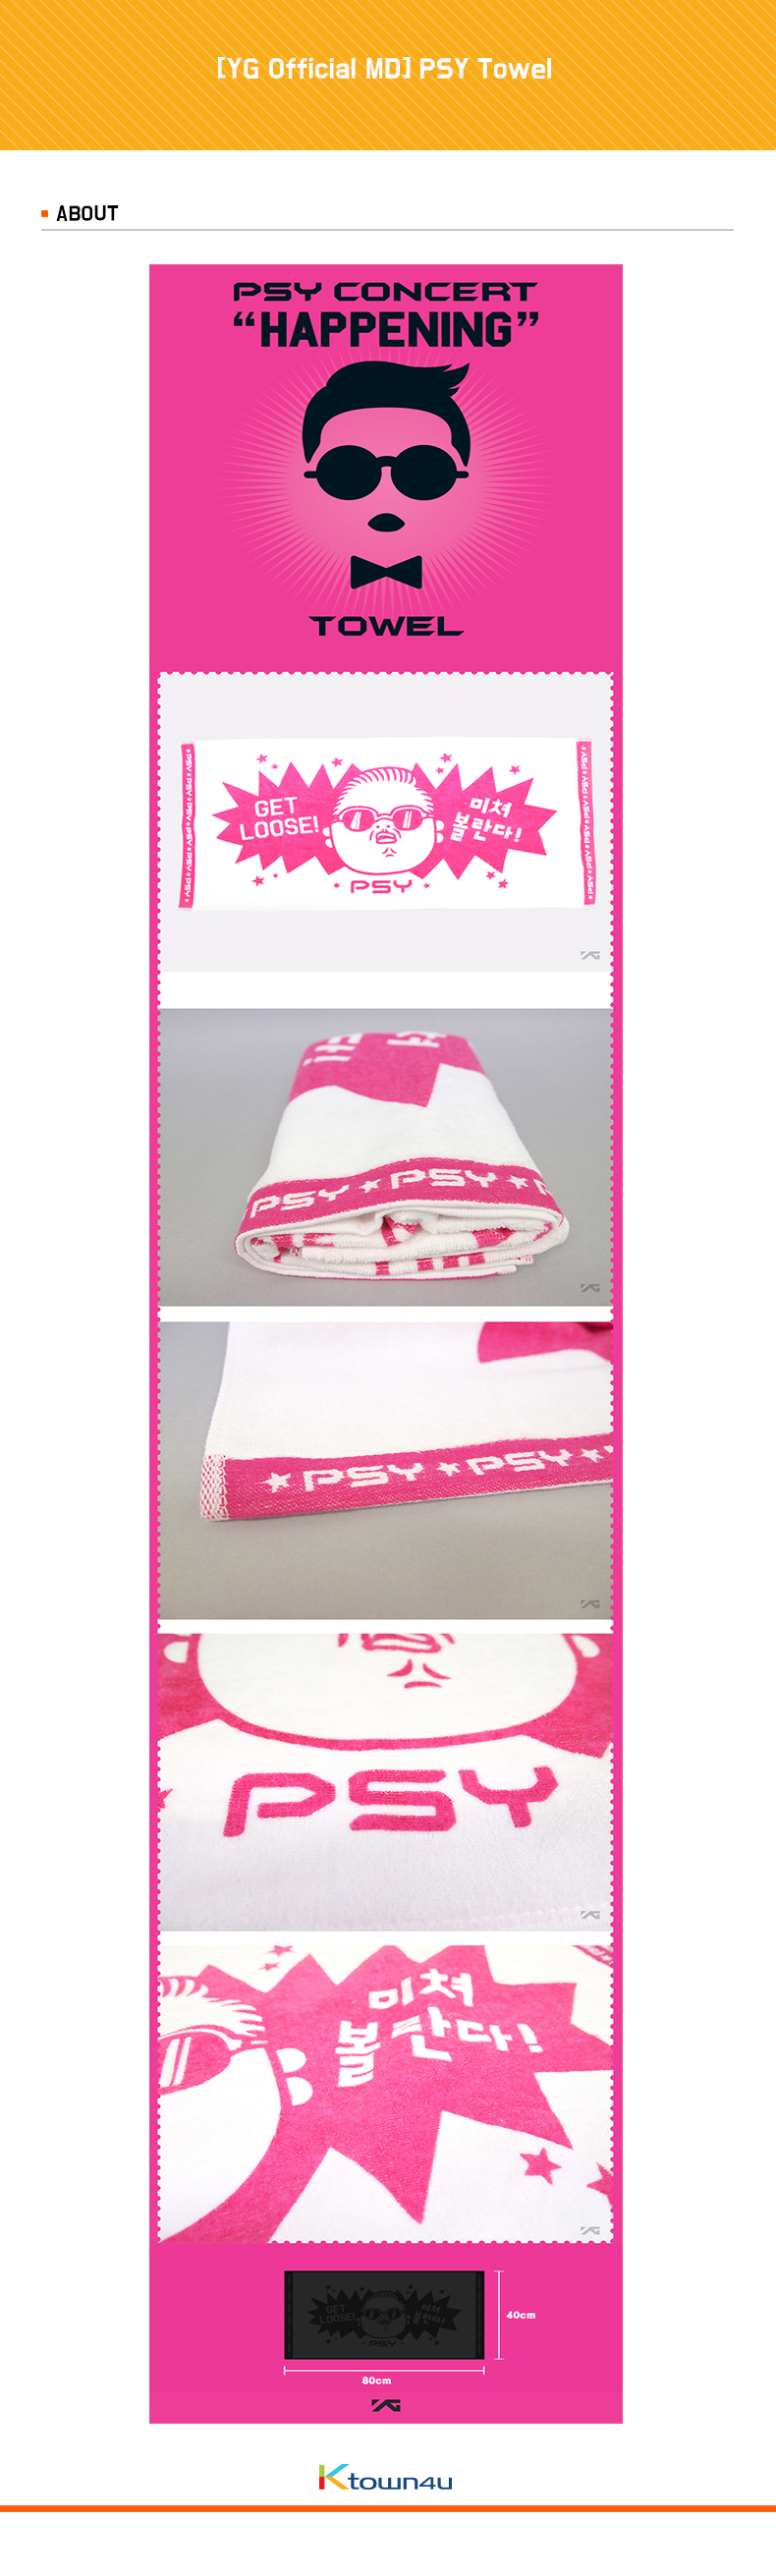 [YG Official MD] PSY Towel